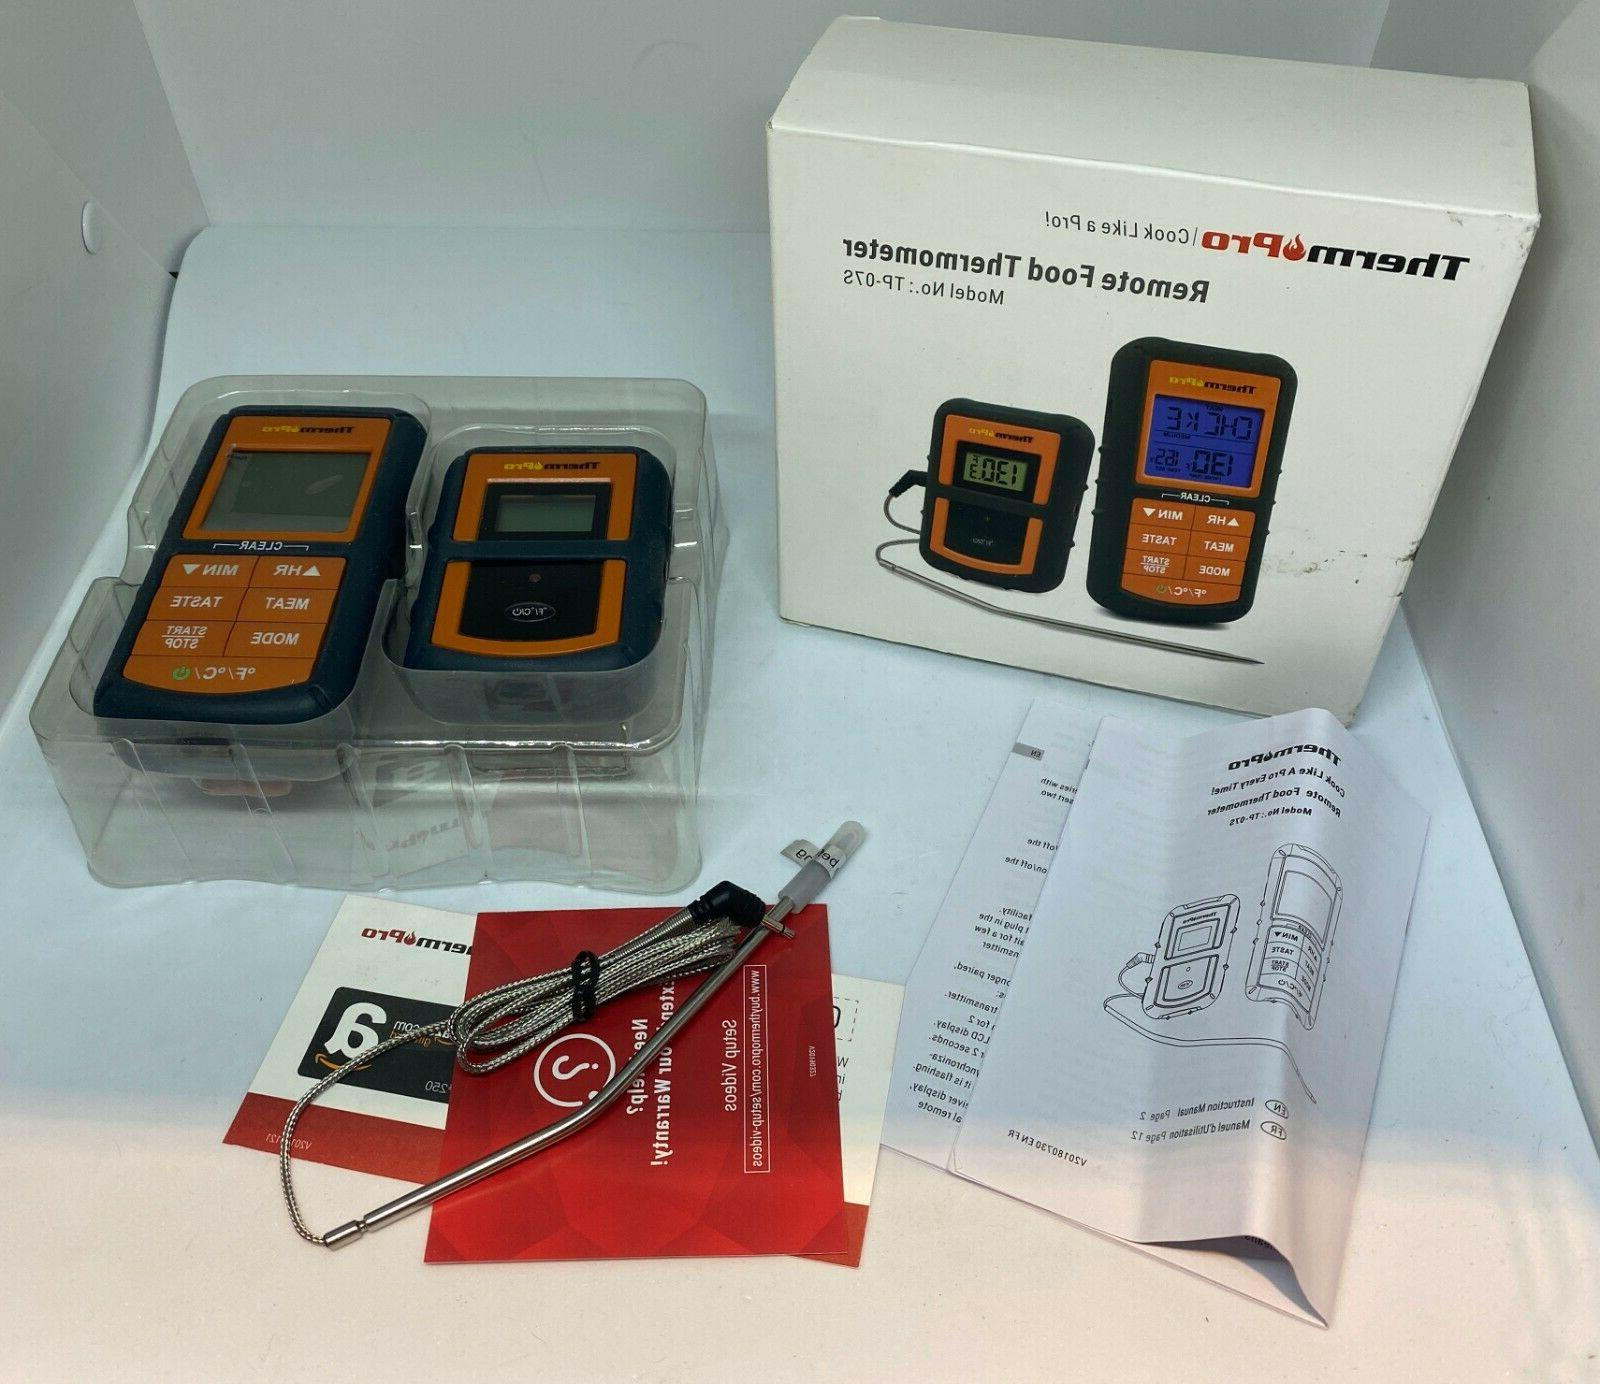 therm pro remote food thermometer model tp